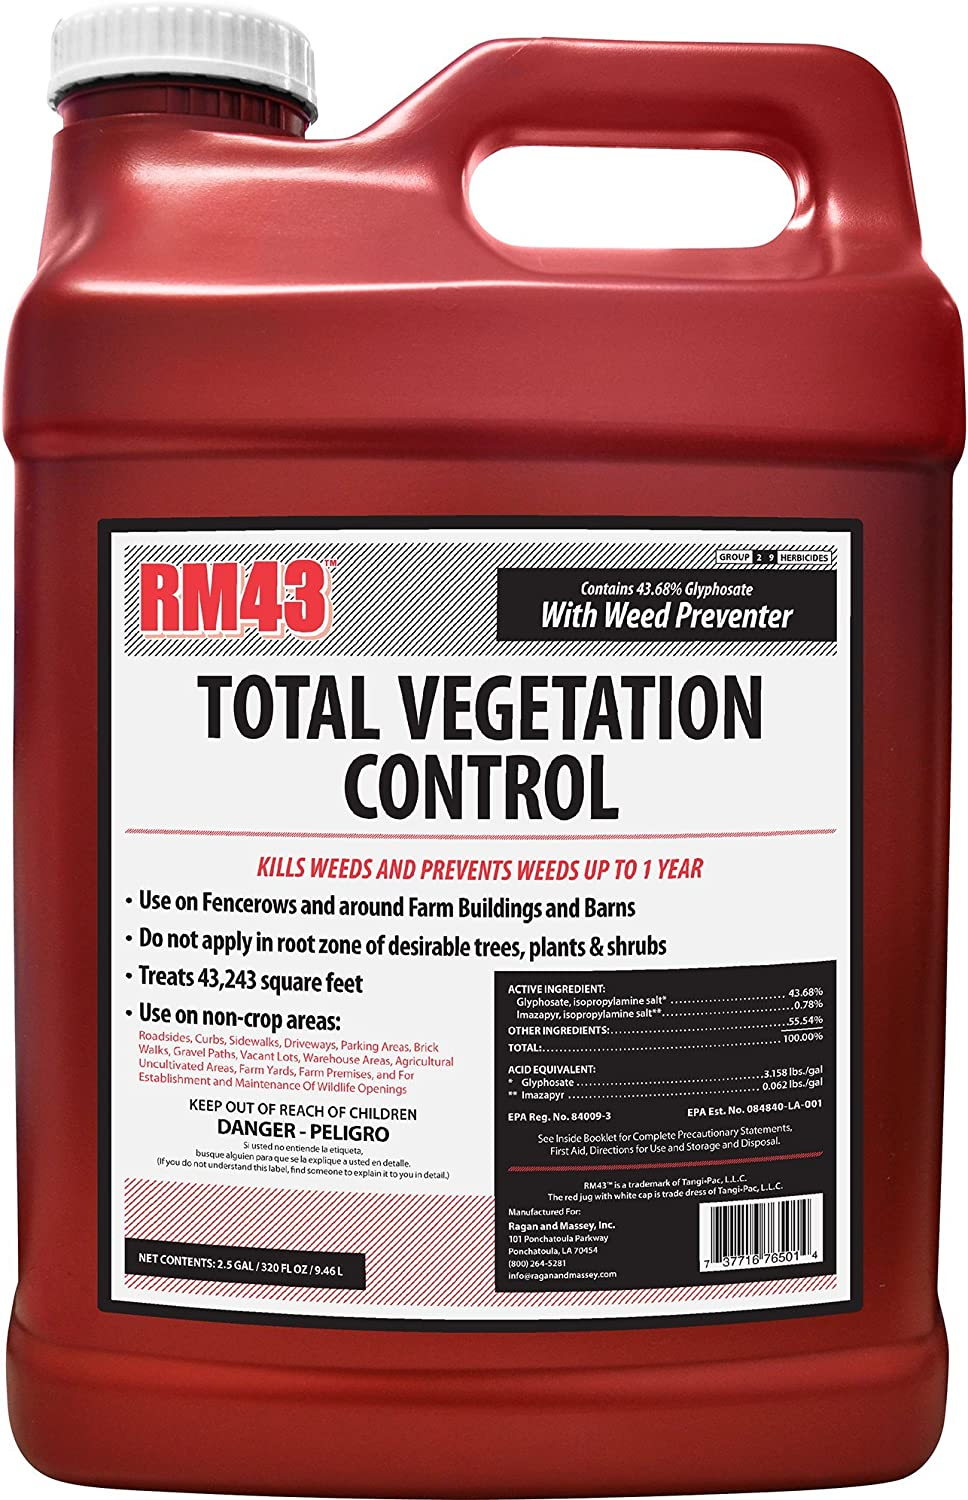 RM43 Weed Preventer